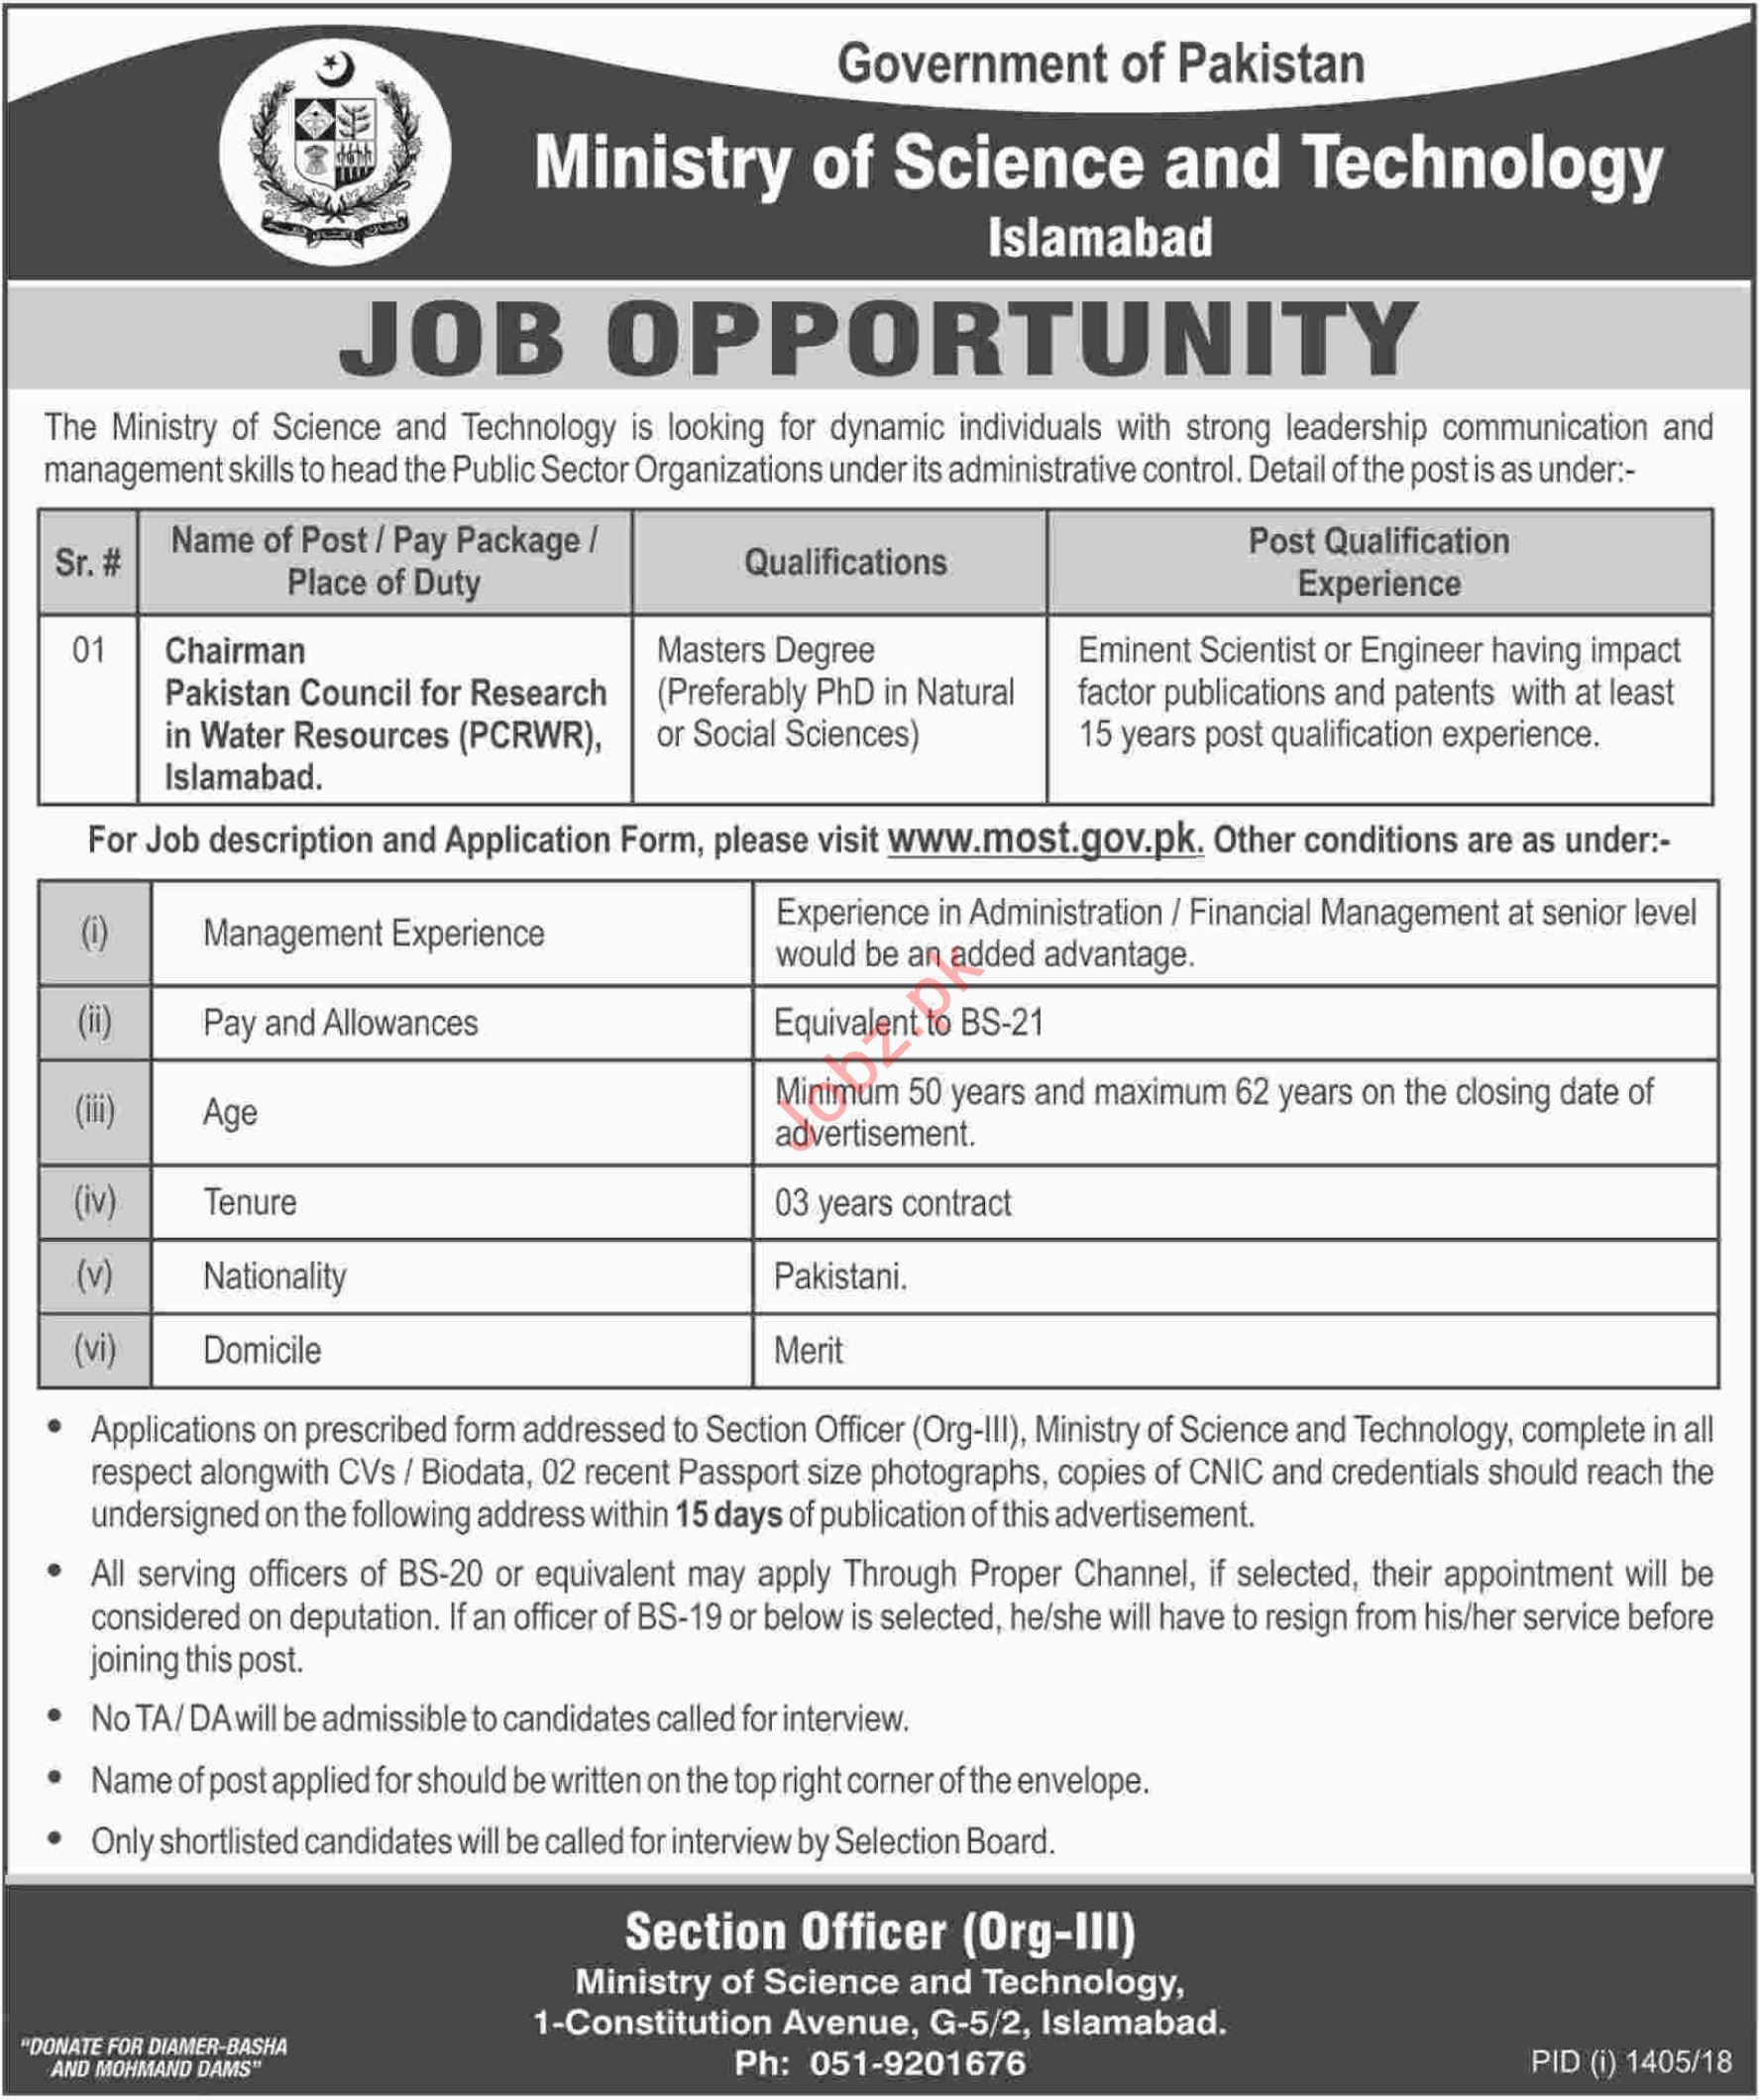 Chairman Job Opportunities for PCRWR